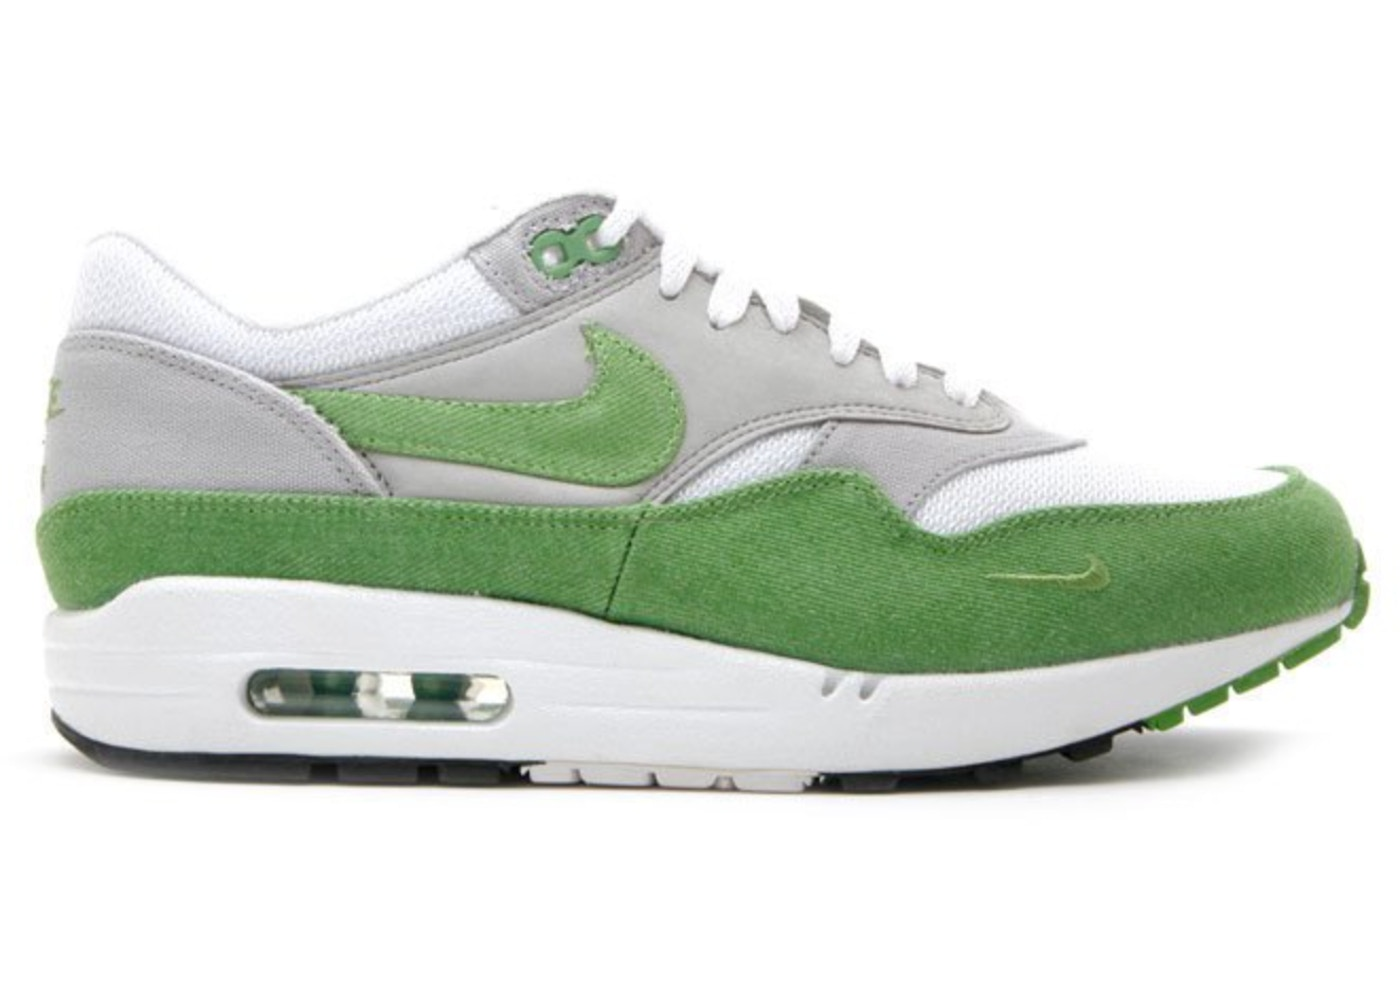 3447d4798ba620 Air Max 1 Patta 5th Anniv Green - 366379-100